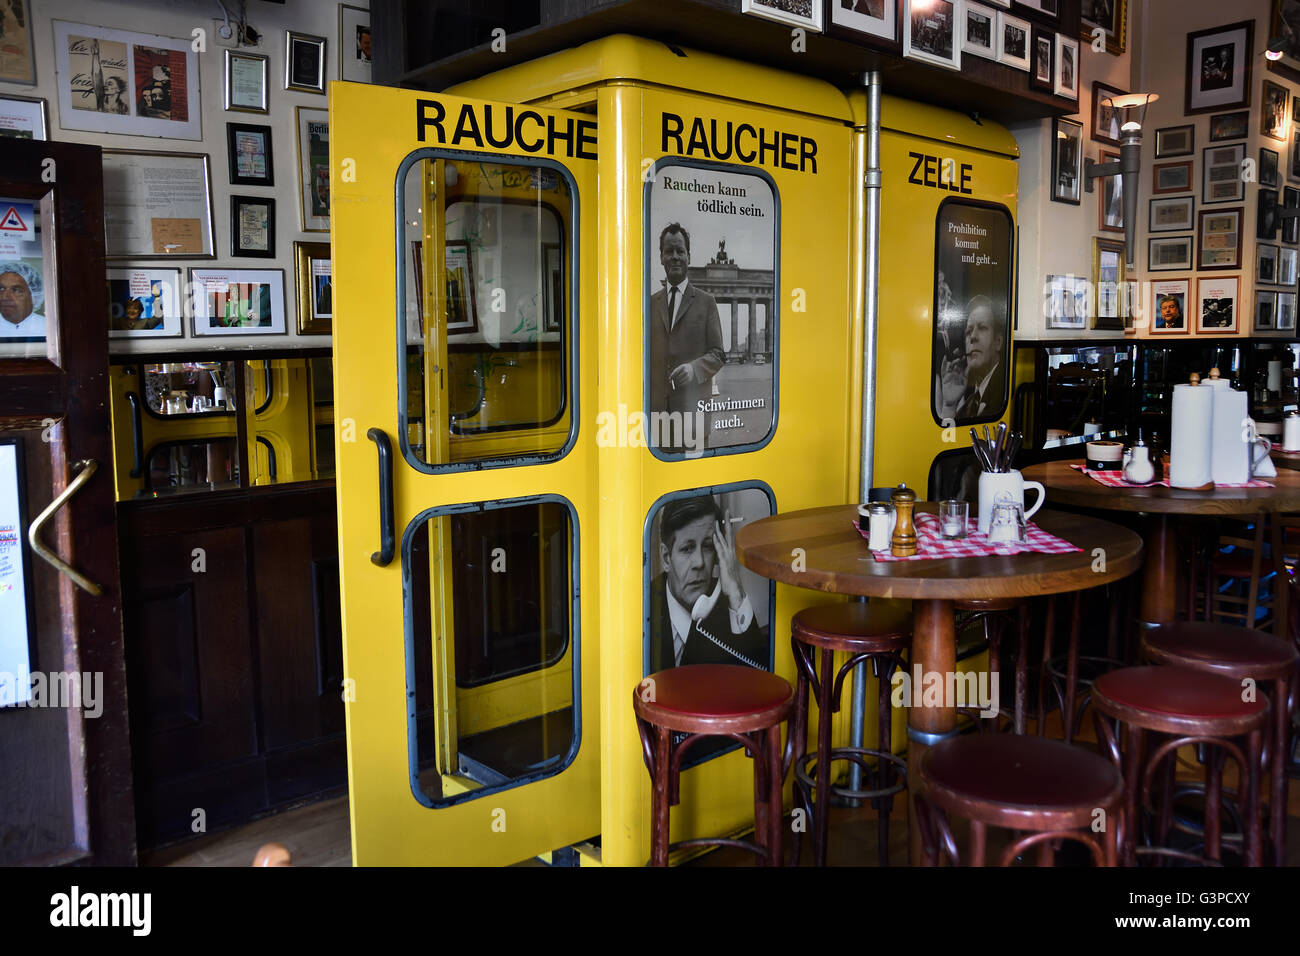 Raucher Zeller - smoking booth ( old telephone booth ) Berlin Germany - Stock Image